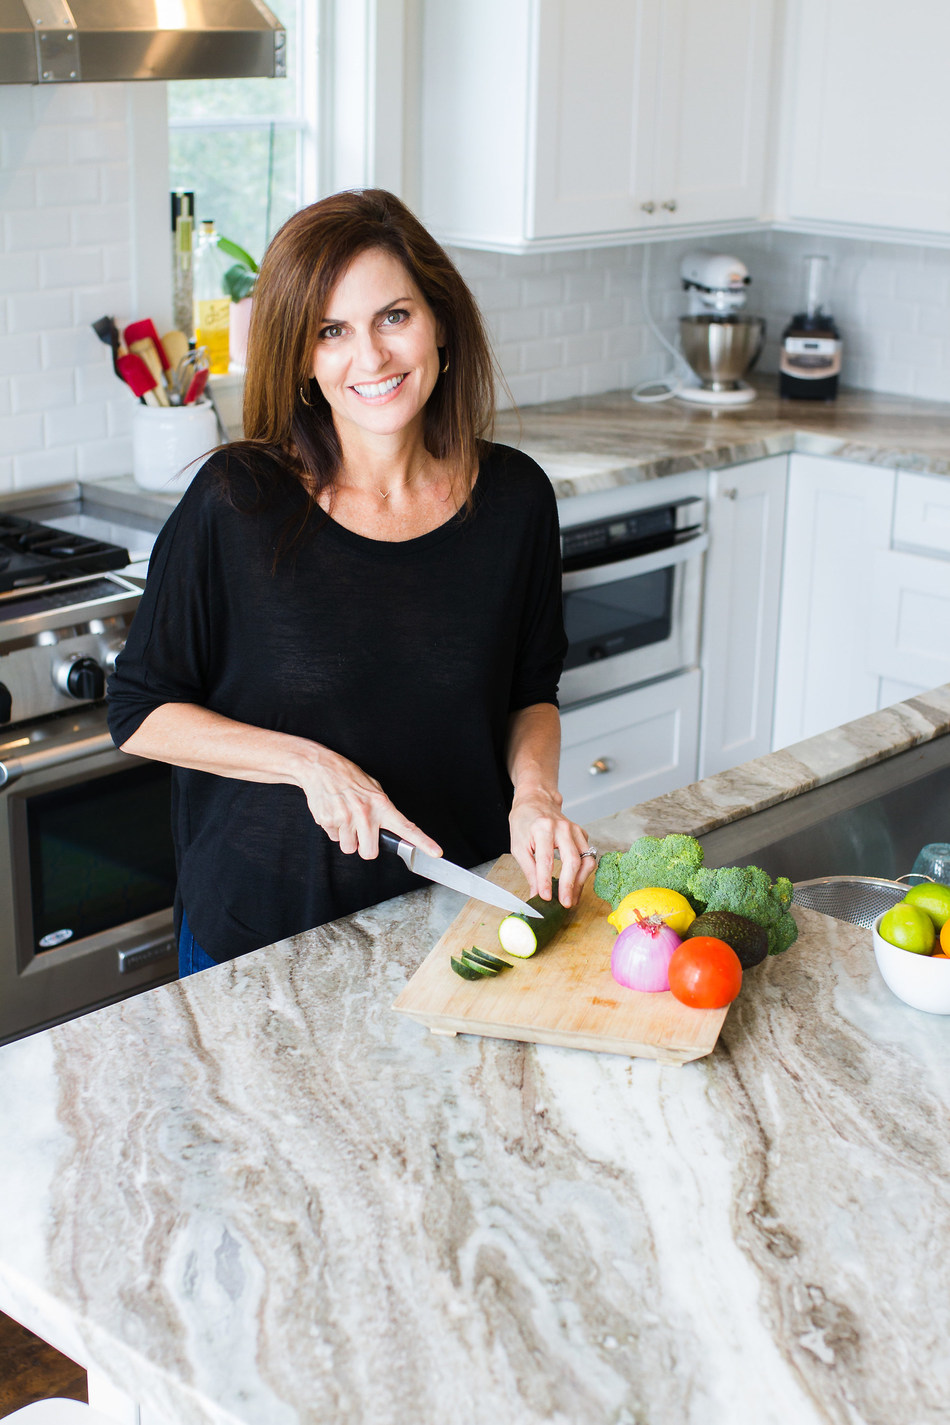 Dr. Mary Claire Haver is the founder and creator of The Galveston Diet, the first and only nutrition program in the world created by a Female OBGYN, designed for women in menopause.